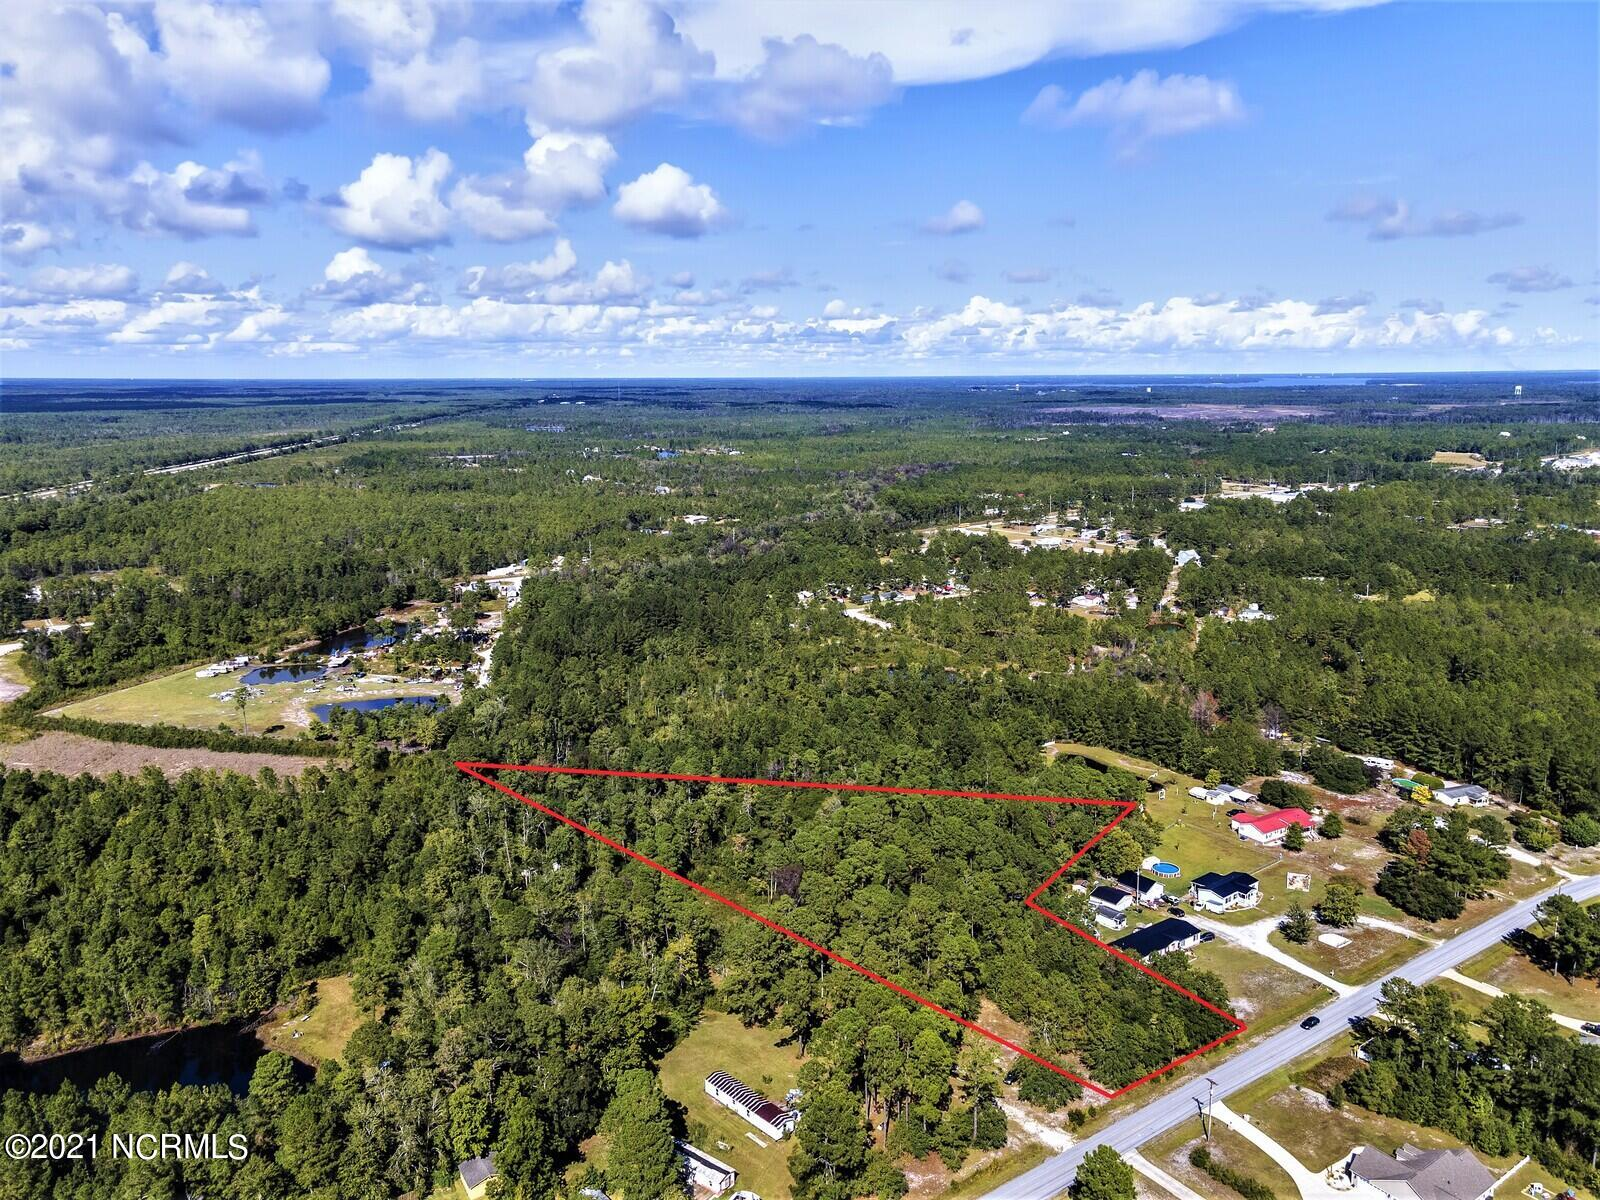 3.31ac situated in coastal NC right off US Hwy 17 on Old Folkstone Road seeking new owners. This parcel is conveniently located between Jacksonville and Wilmington, with easy commutes to either town, Marine Corps base Camp Lejeune, or Interstate 40. A survey on file shows 110 feet of road frontage, offering many possibilities, especially since this property is zoned R30M, which only calls for 30,000sqft lot minimums, with manufactured homes allowed! None of the land is in a special flood hazard area and there are no septic permits on file. Holly Ridge is located just minutes to the beaches of Topsail Island, the schools are within 10 minutes away, and the coastal lifestyle is waiting on you... call a Realtor for more details today!